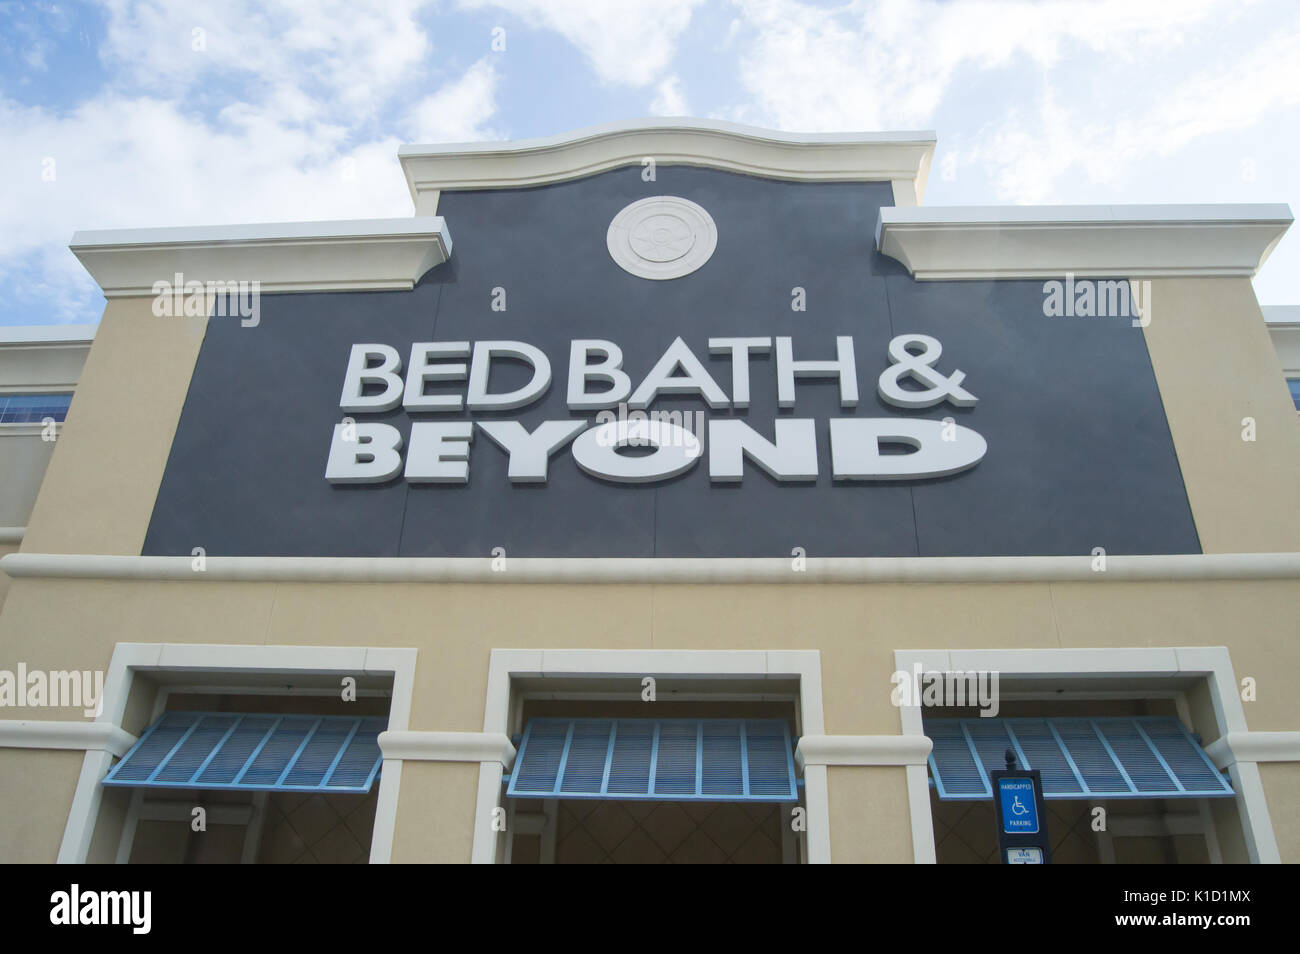 Bed Bath And Beyond Stock Photos & Bed Bath And Beyond Stock Images ...